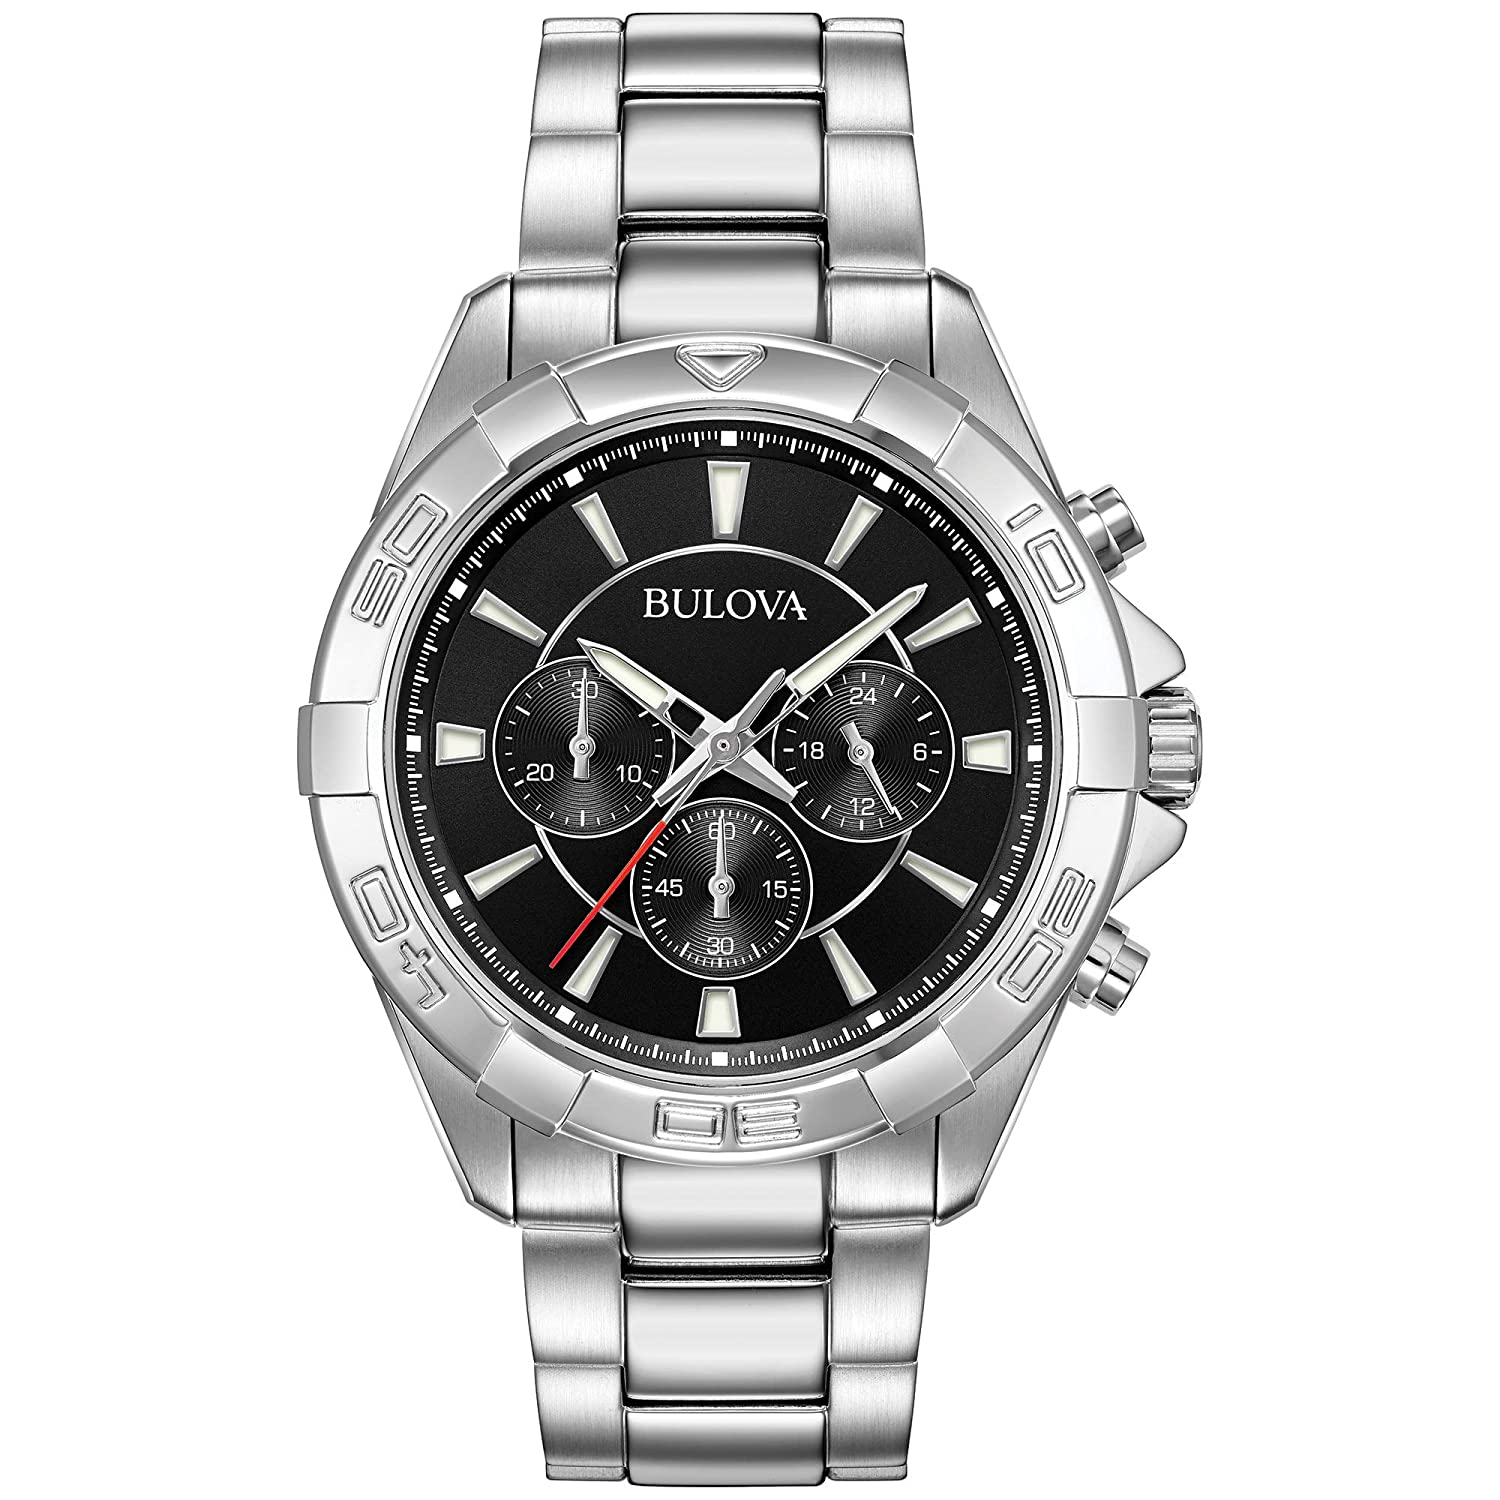 4faeb3a32 Amazon.com: Bulova Men's 96A216 Chronograph Black Dial Sport Stainless  Steel Watch: Watches